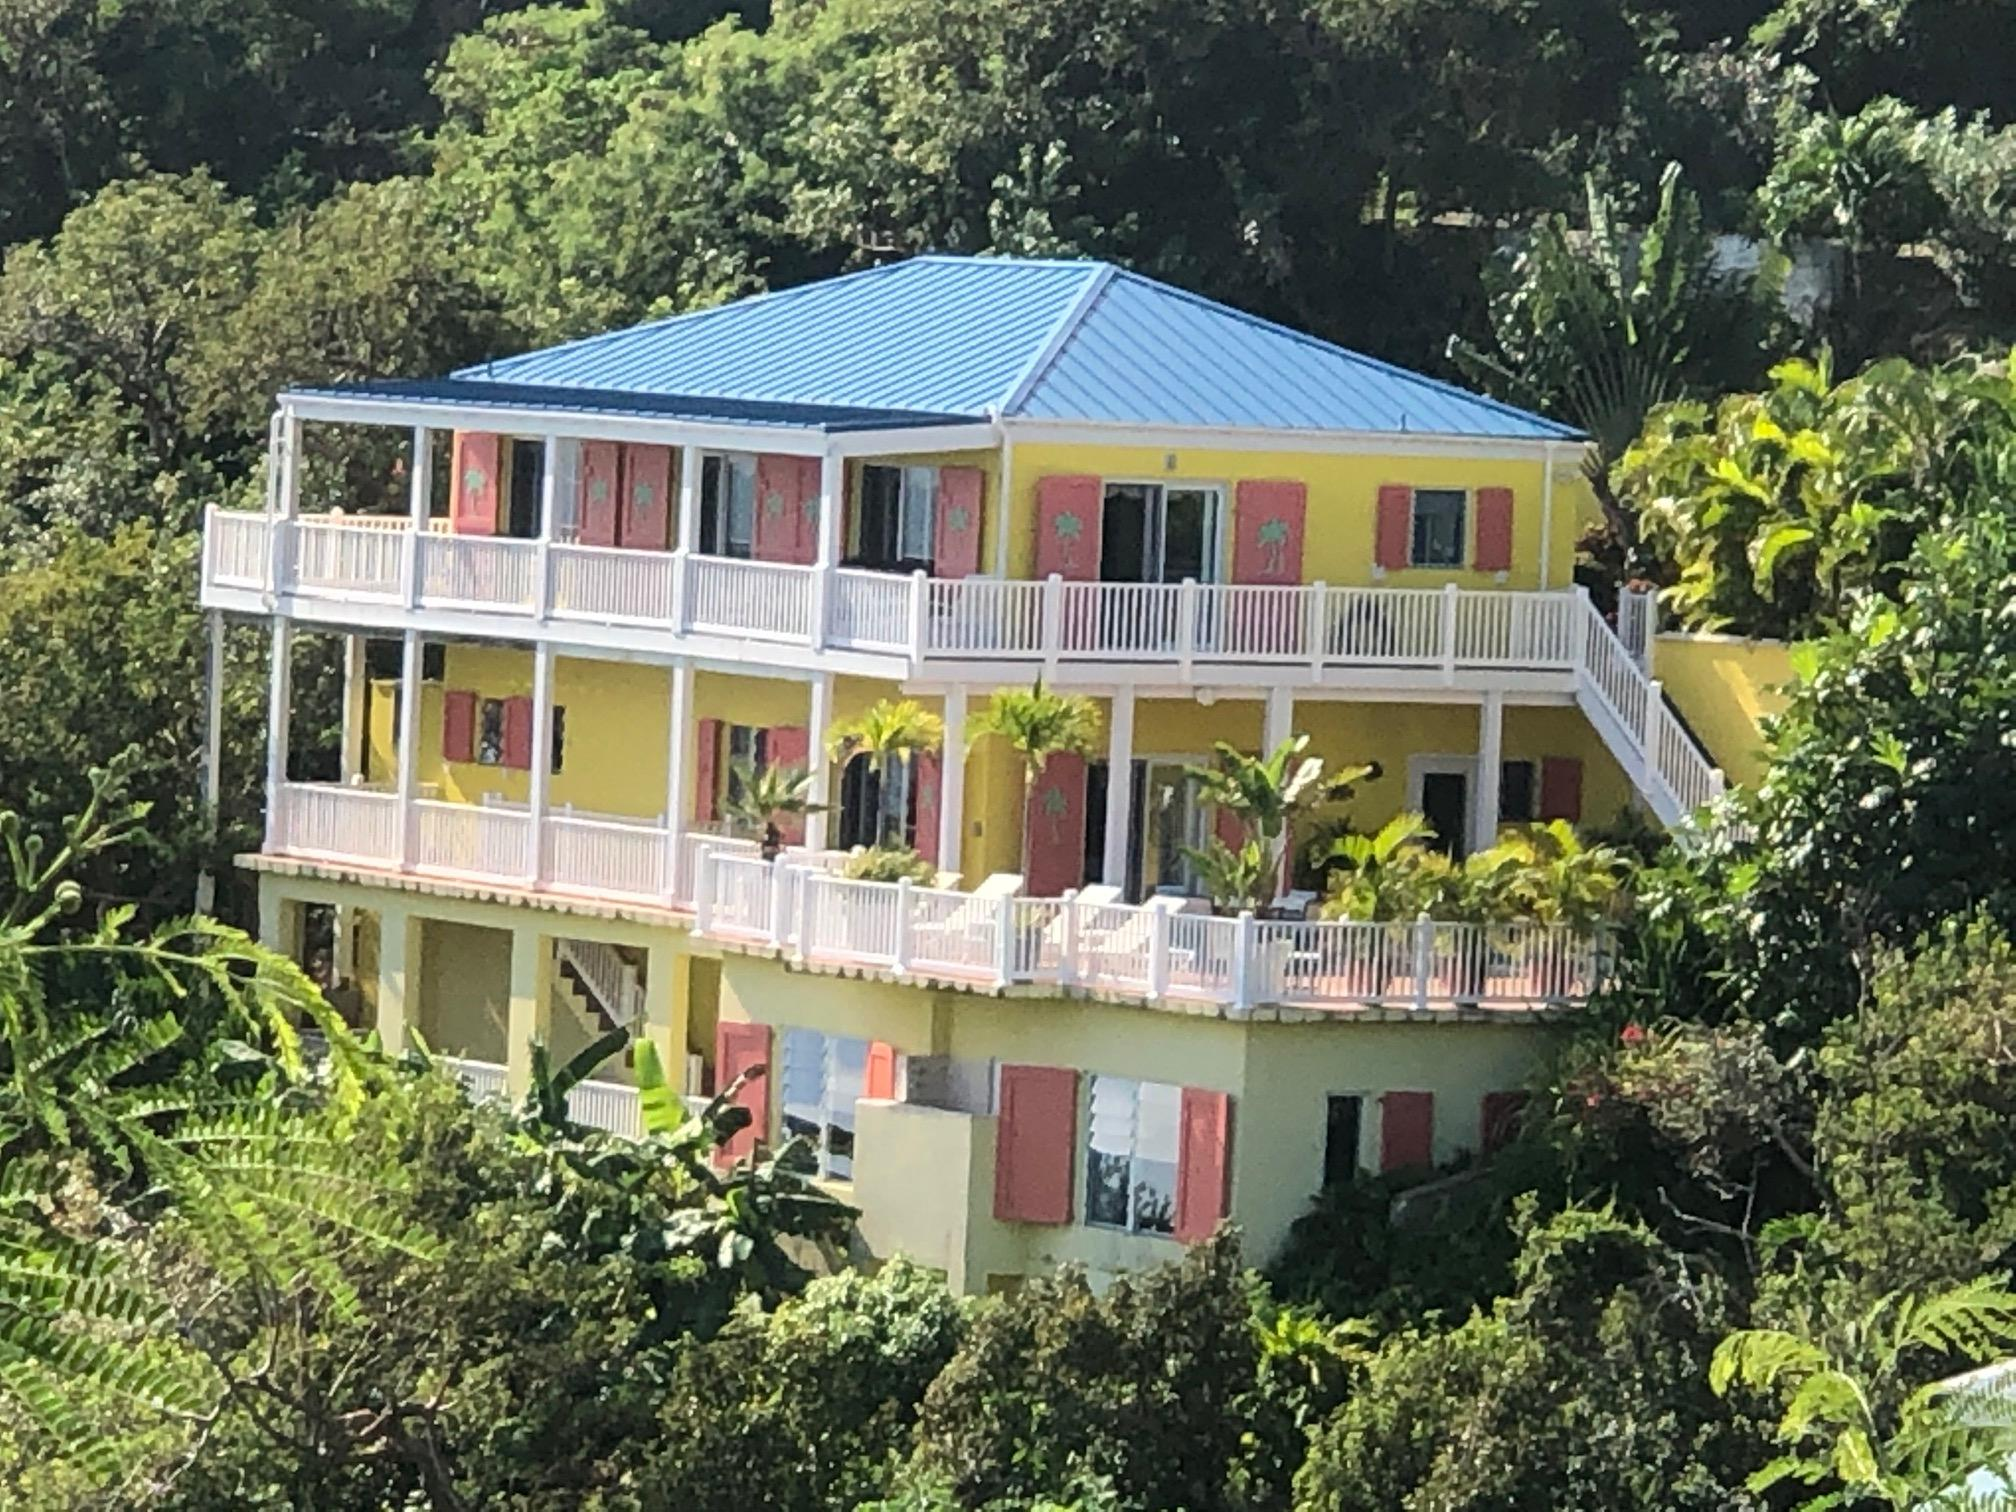 RE/MAX real estate, US Virgin Islands, St. Quaco & Zimmerman, Price Reduced  Residential  St. Quaco  Zimmerman